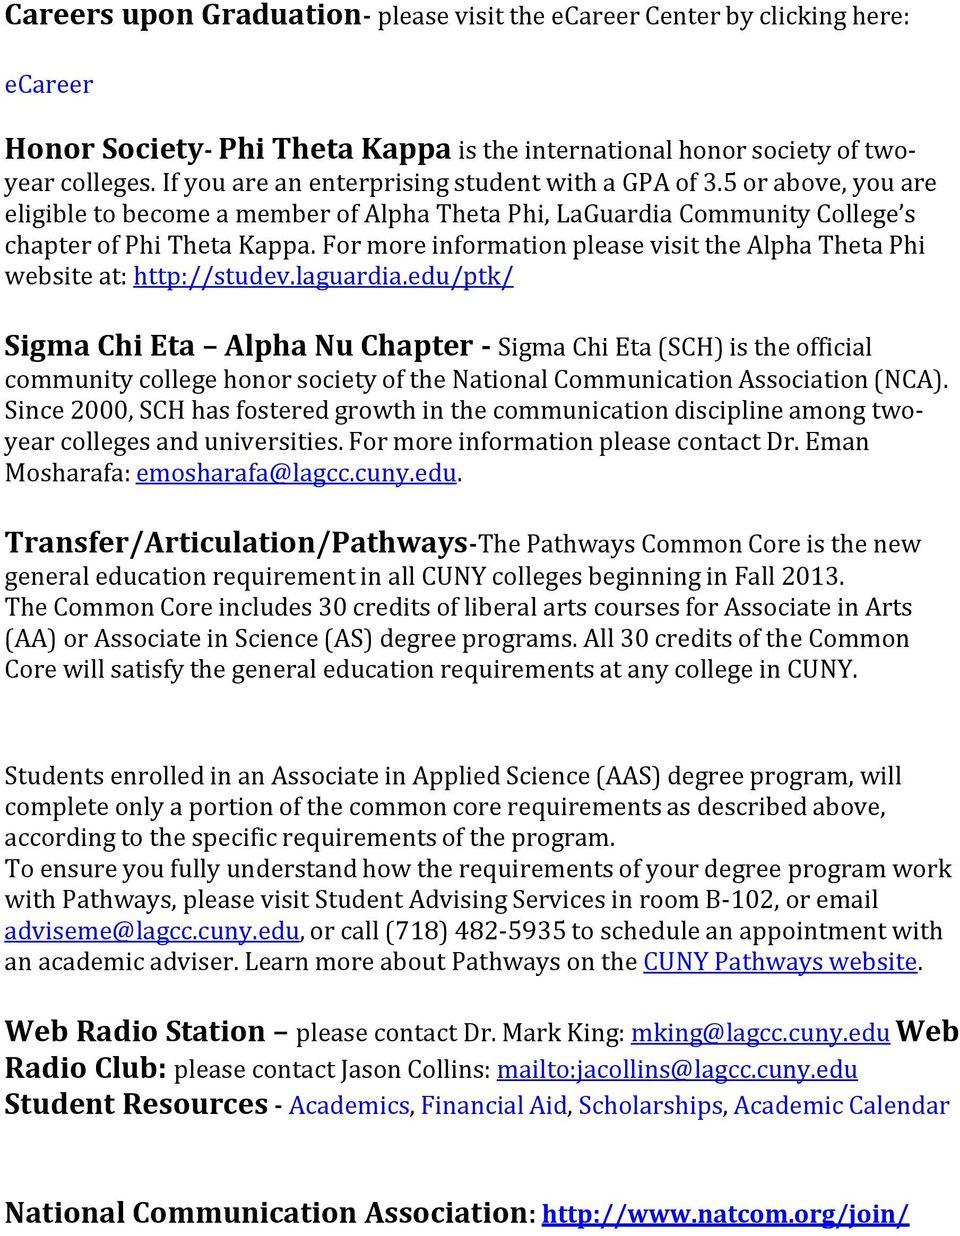 For more information please visit the Alpha Theta Phi website at: http://studev.laguardia.